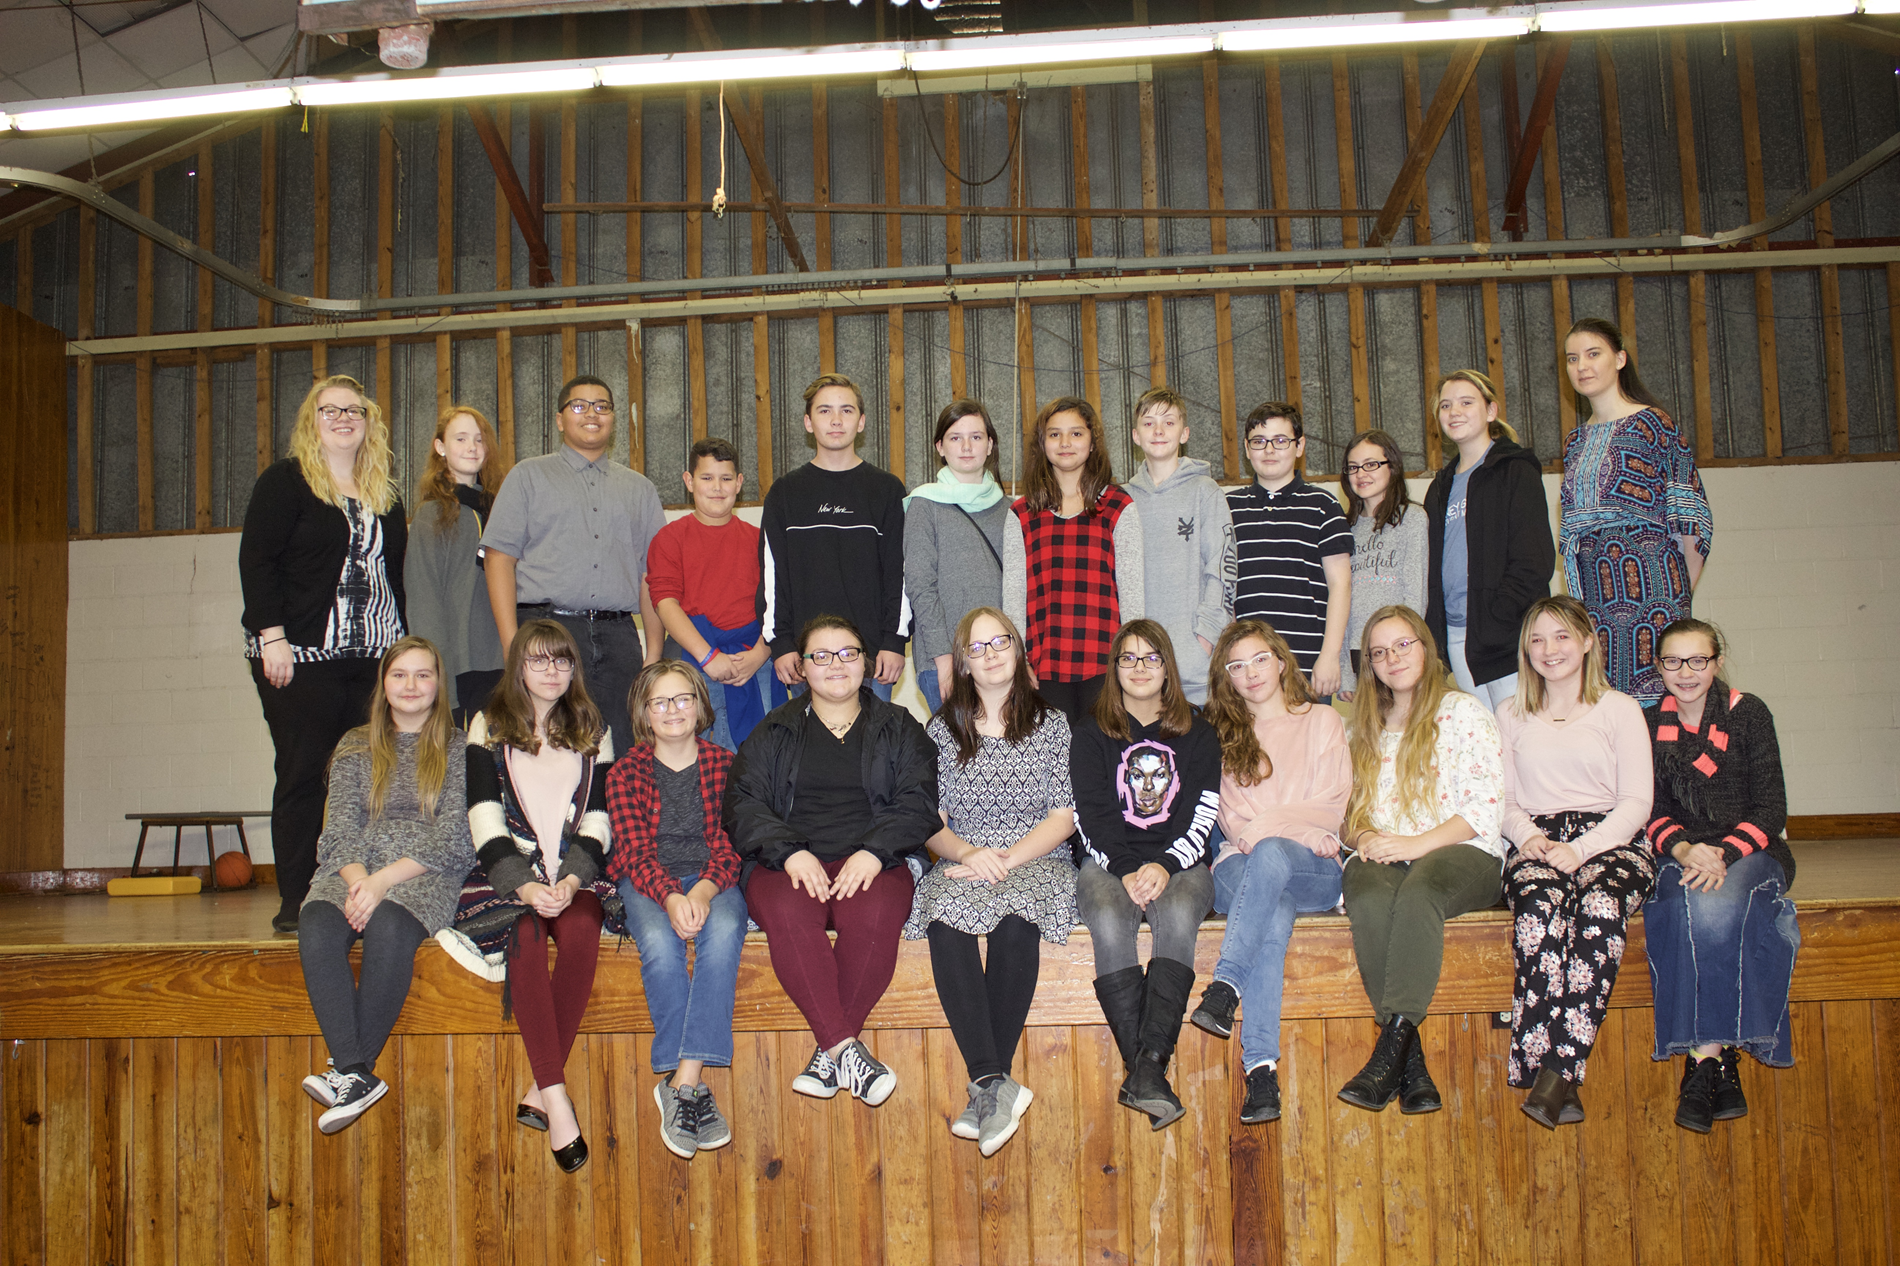 Yearbook Photo by Yearbook Staff